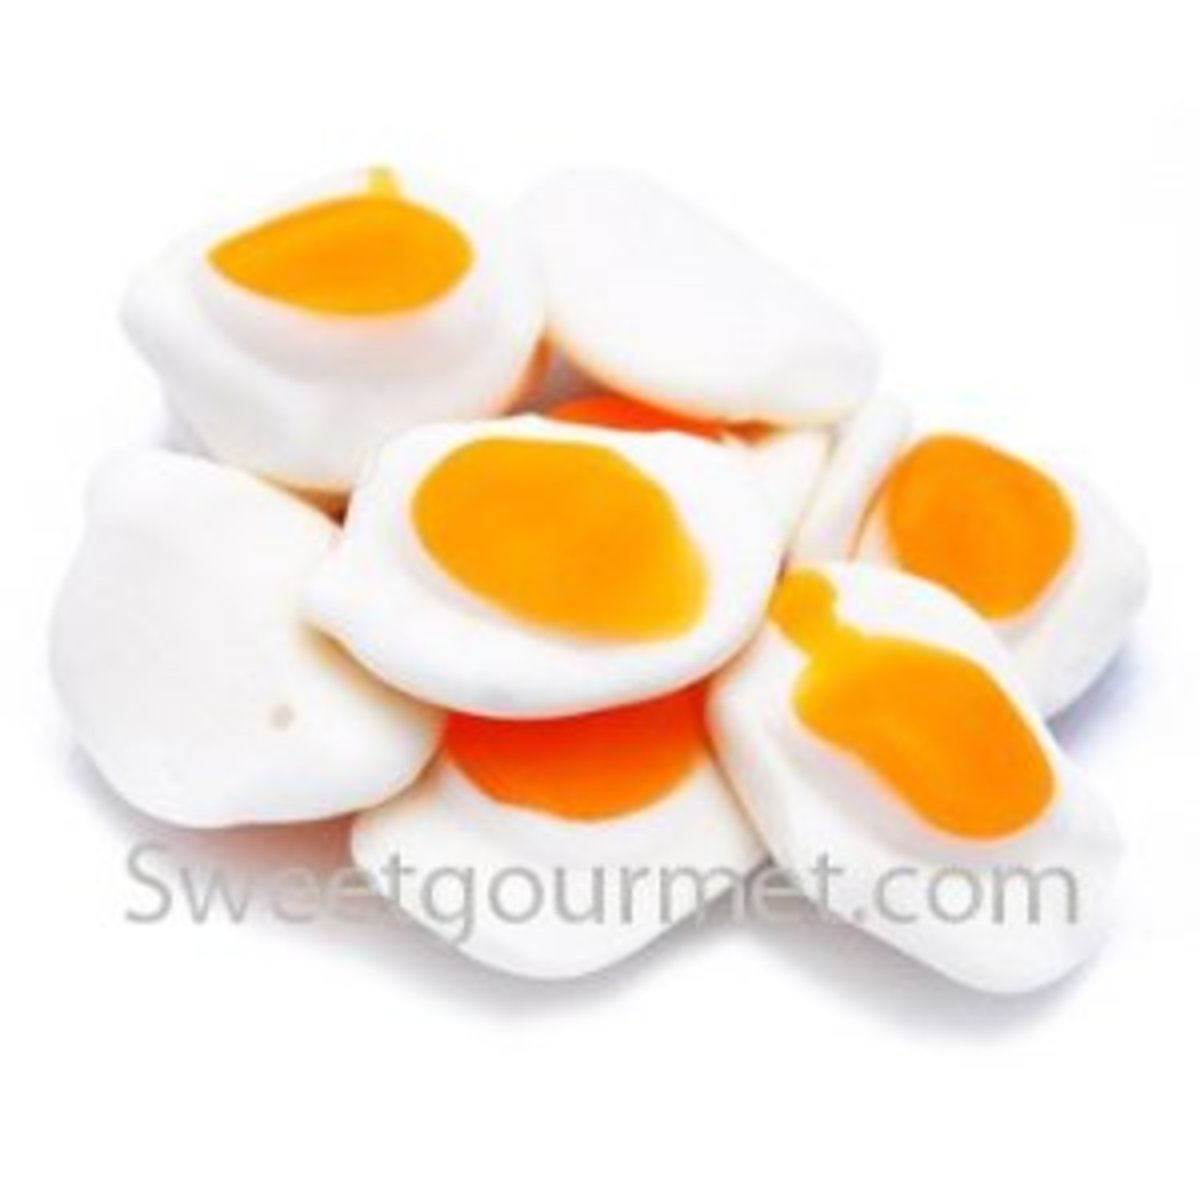 Fried Eggs Candy